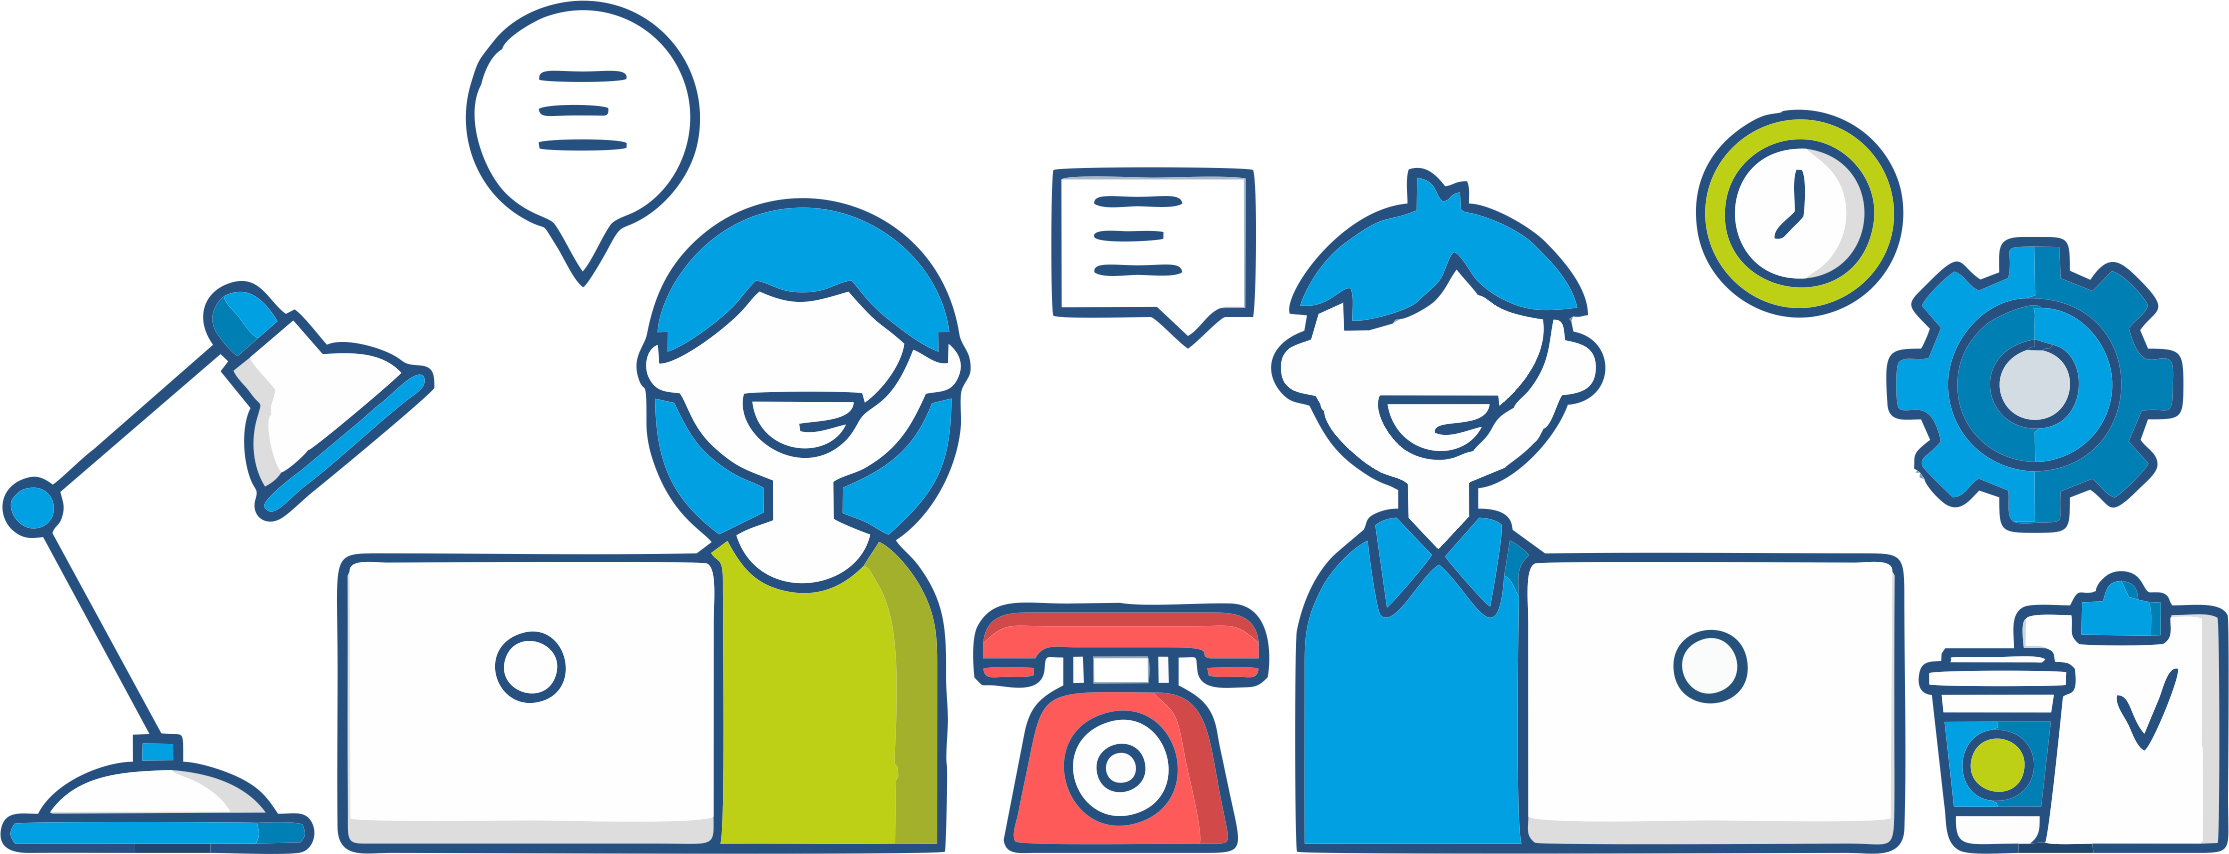 customer-service-clipart-images-14.png